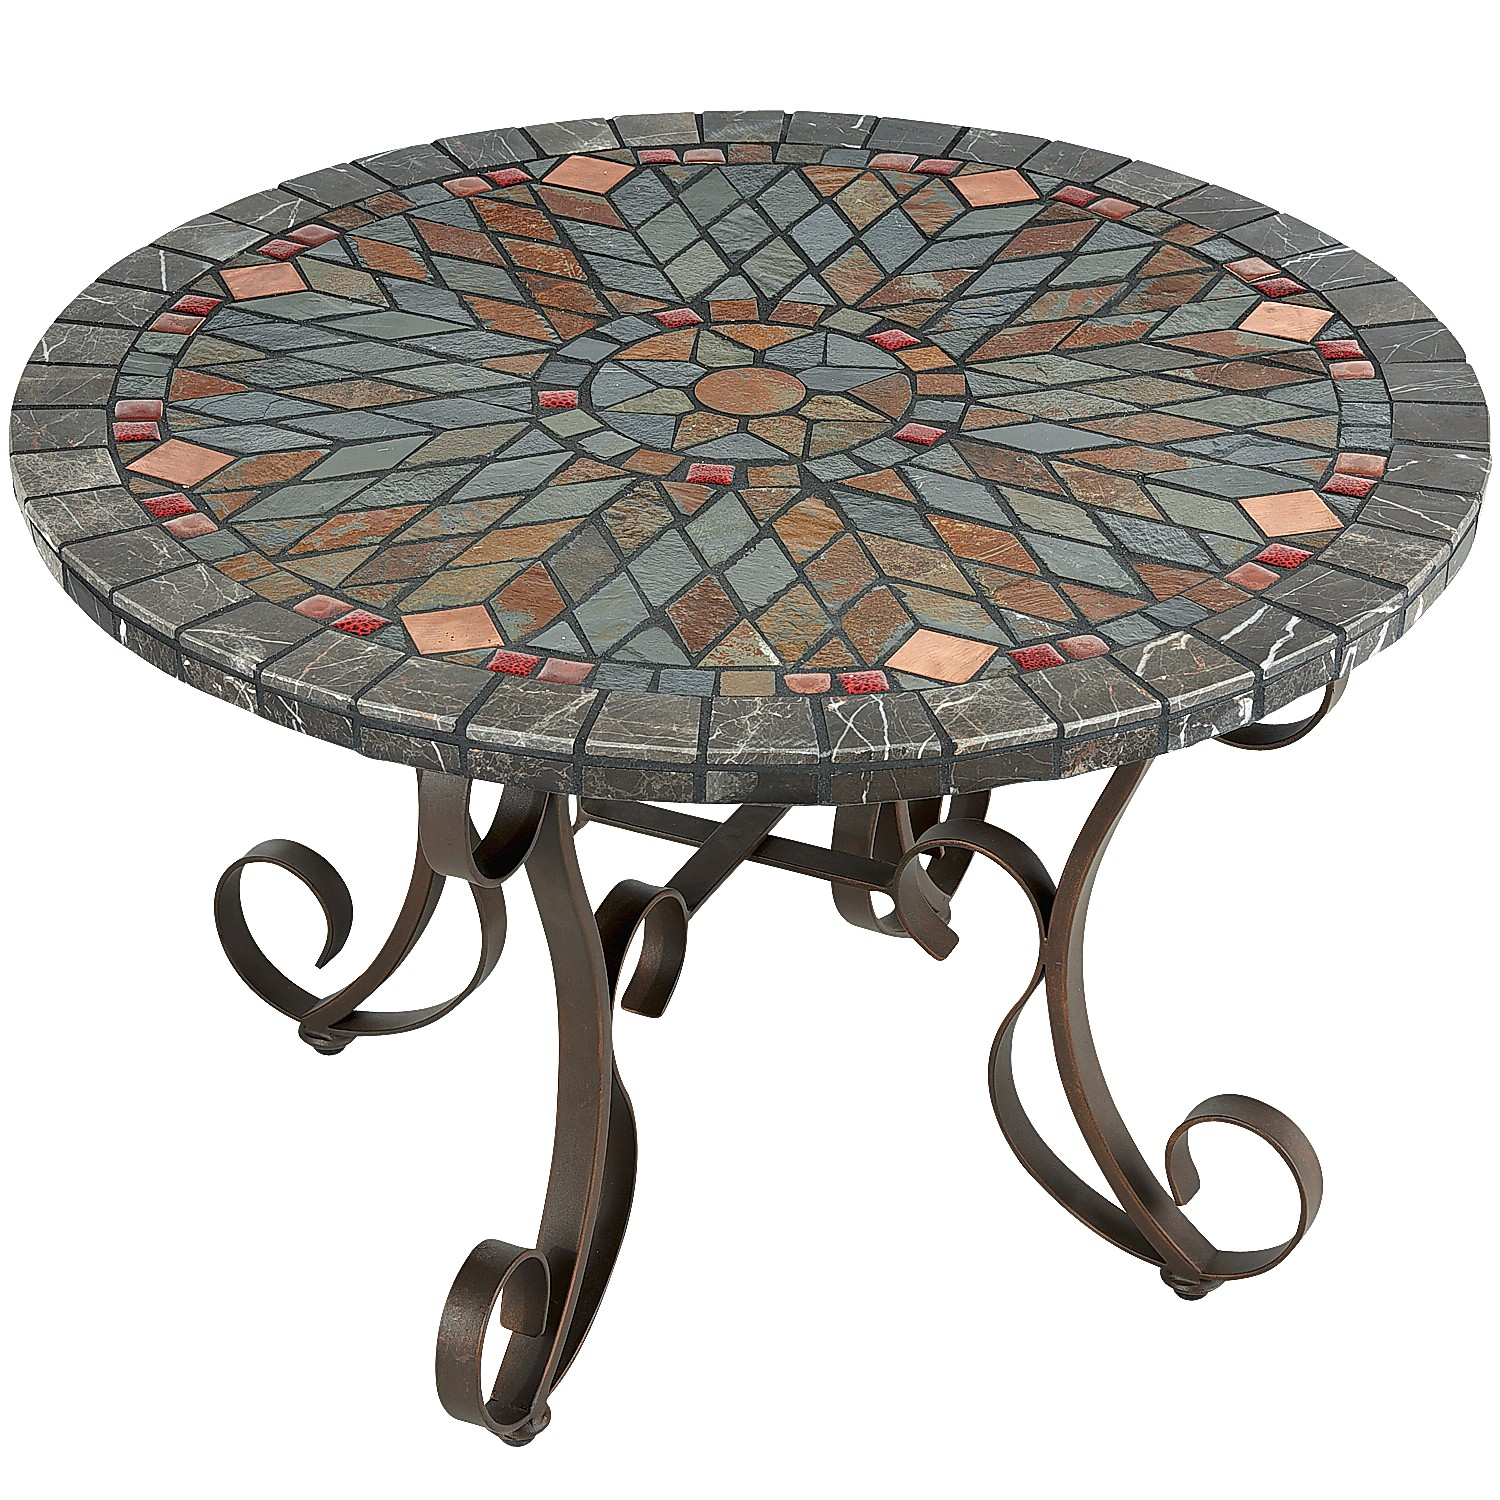 variation thumbnail of Verazze Mosaic Coffee Table